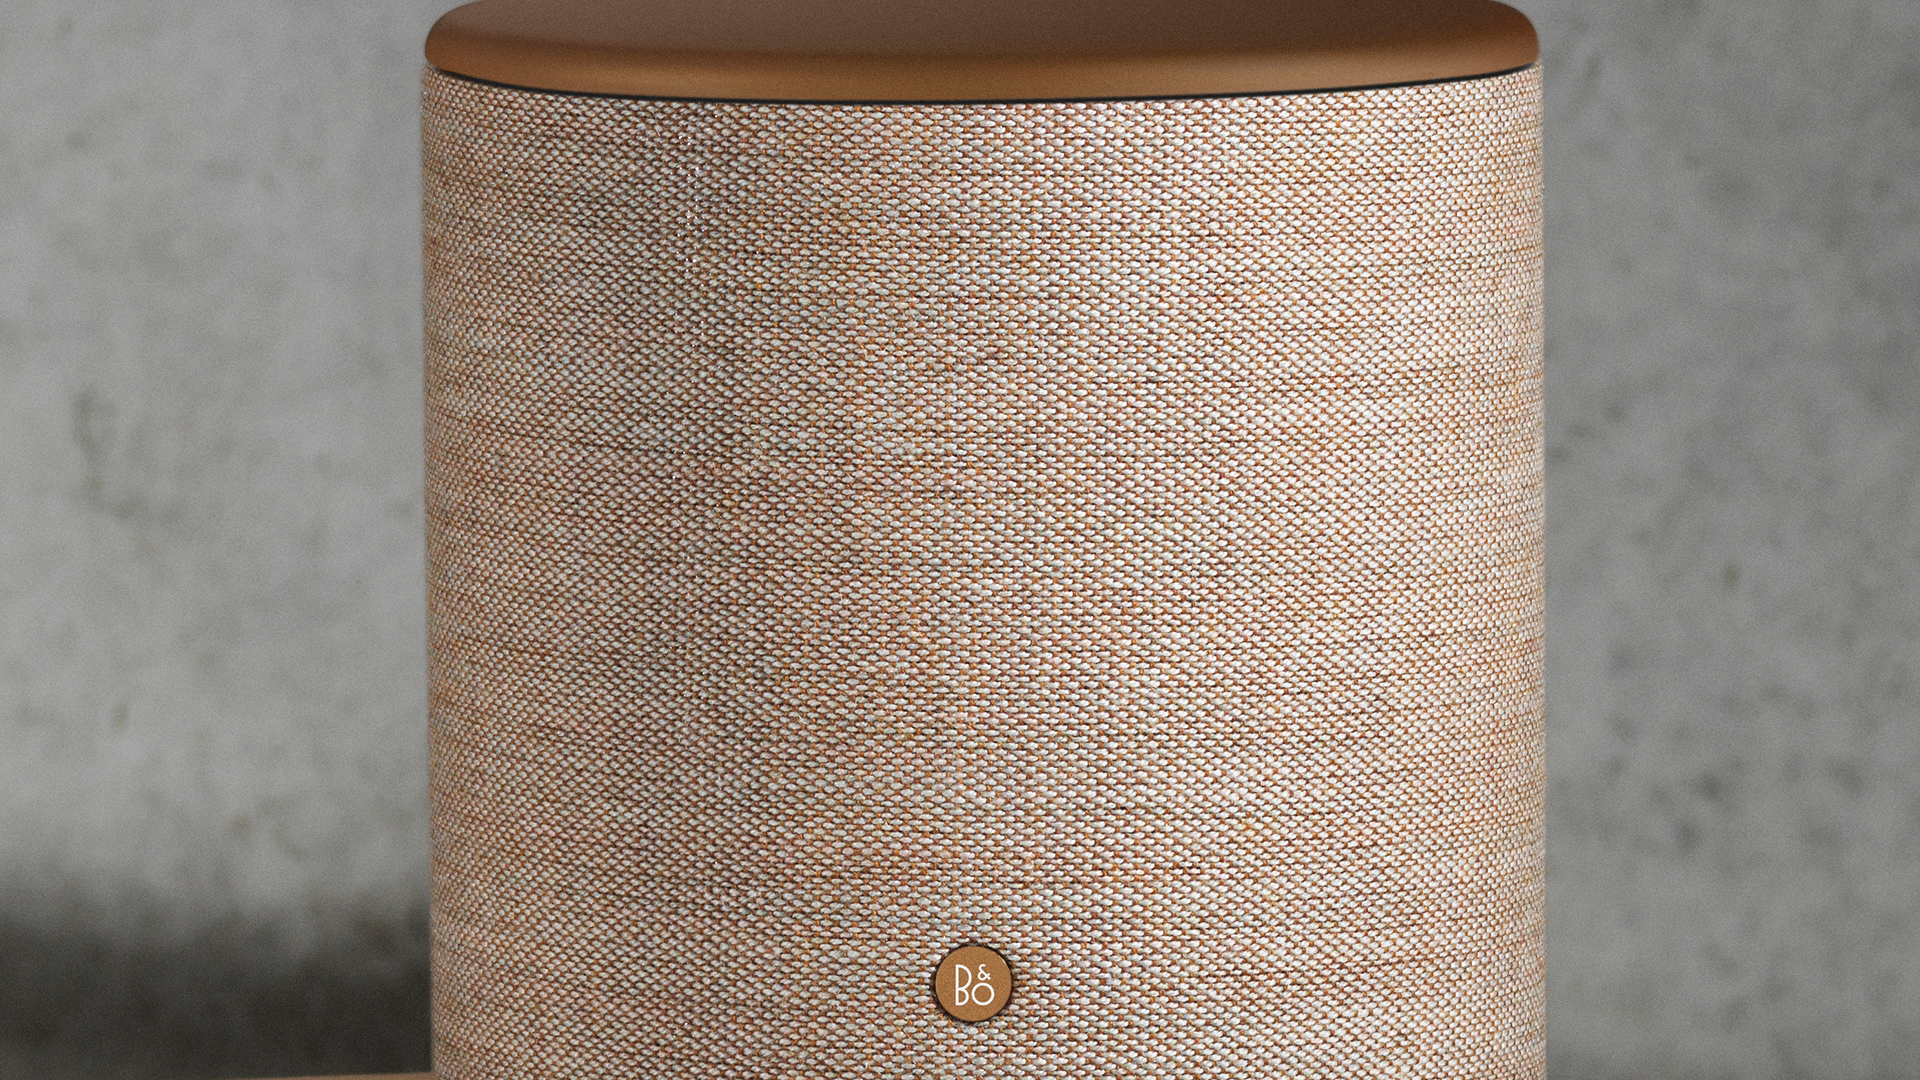 beoplay-m5-gallery-1